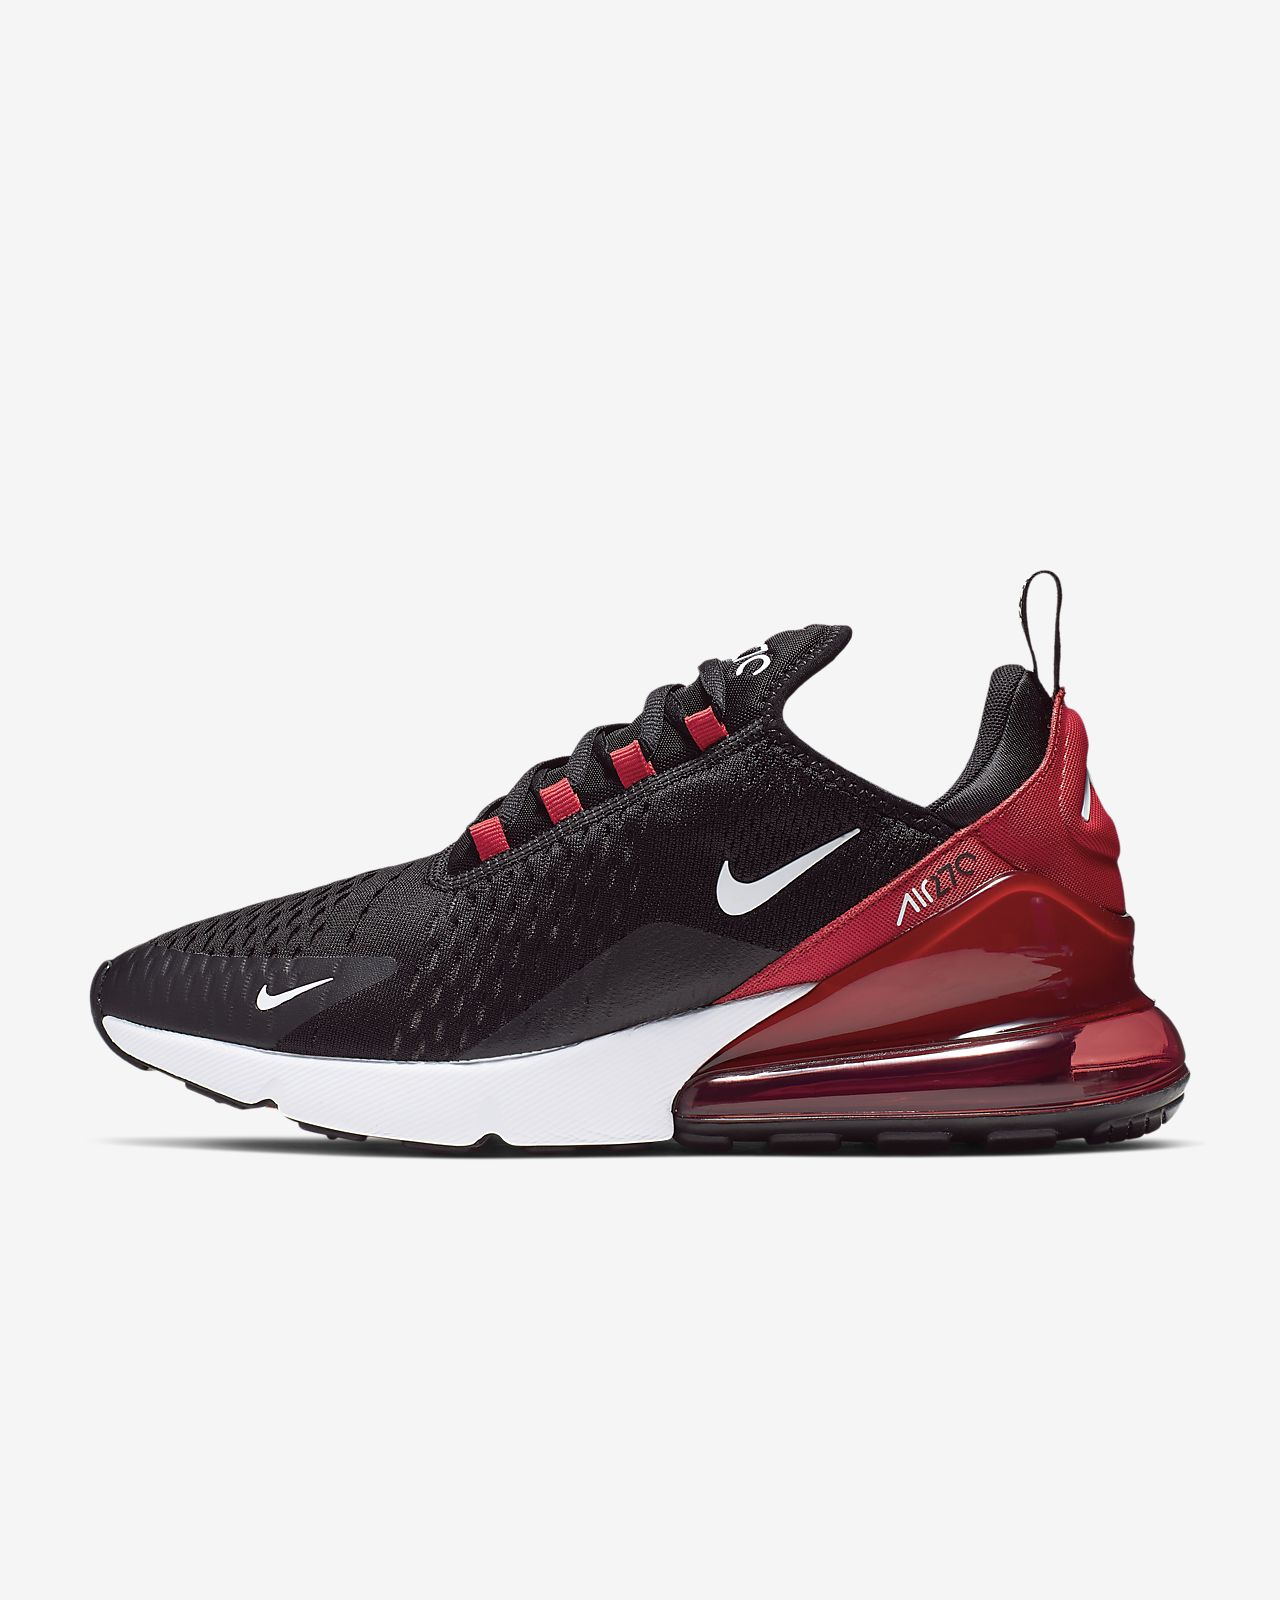 lowest price 33a33 caac4 ... Nike Air Max 270 Men s Shoe